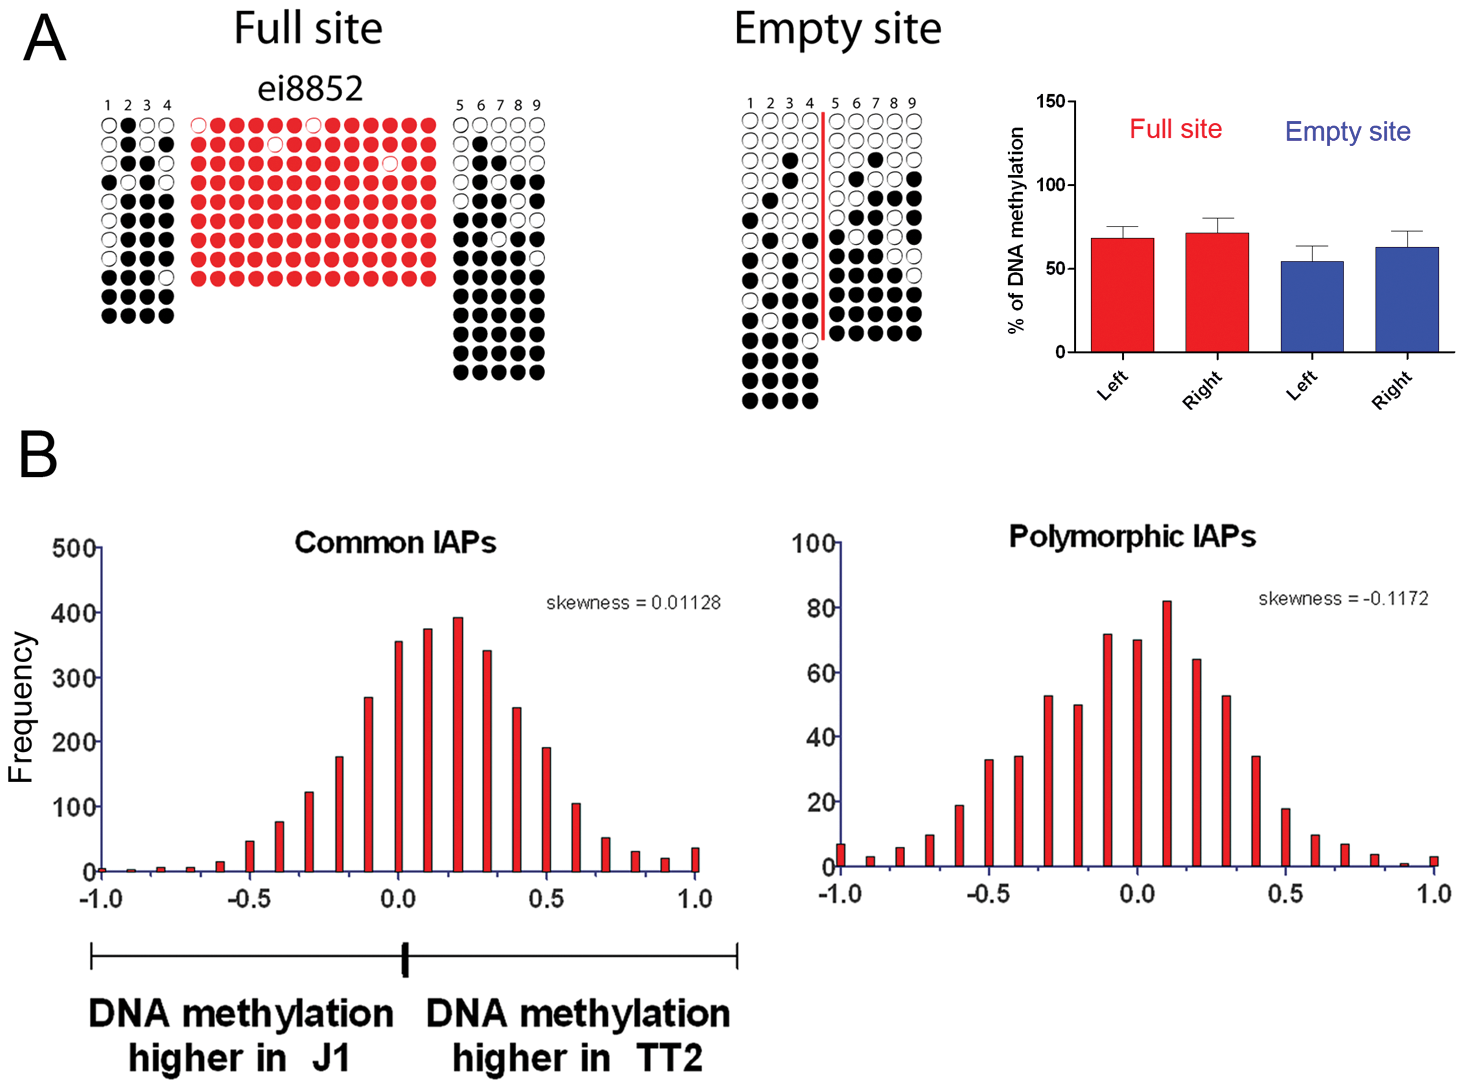 DNA methylation analysis of IAPs in both ES cell lines.